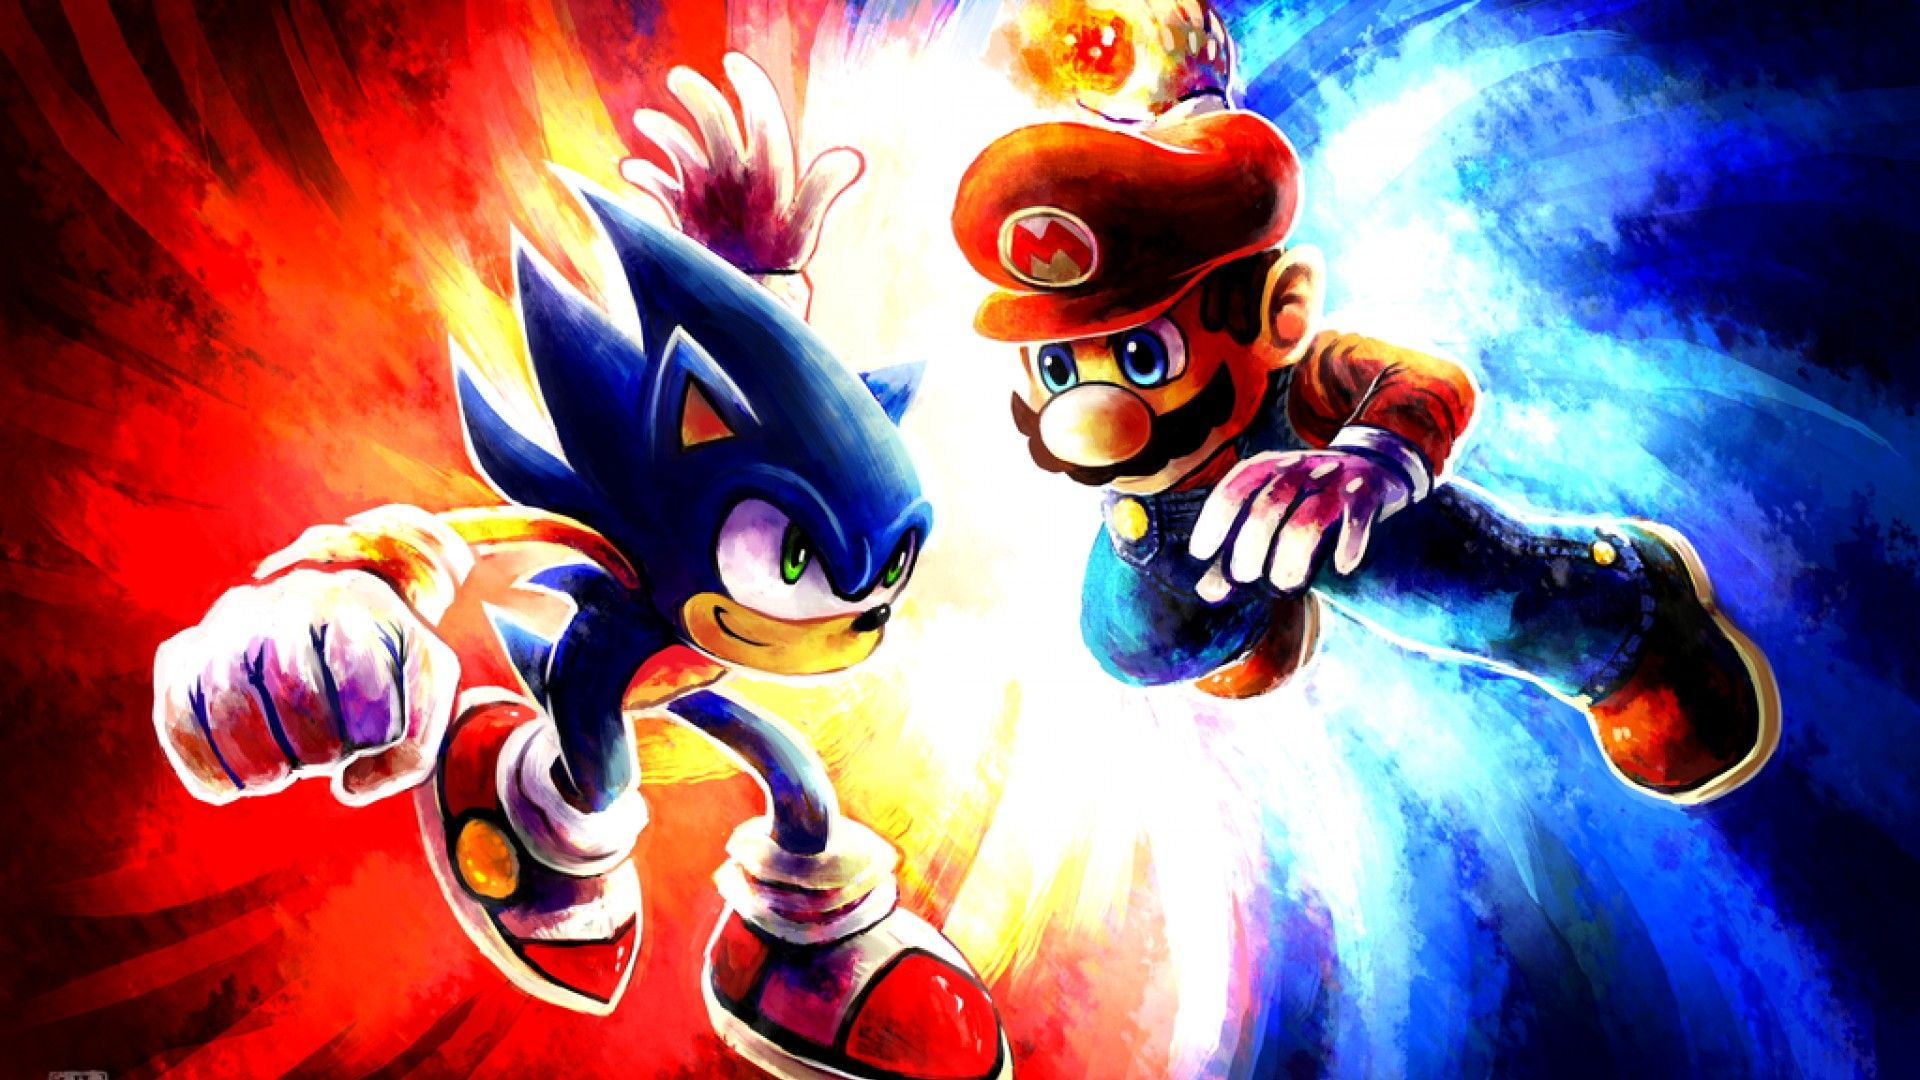 SonicWallpaper17B Sonic, Red and white, Cartoon wallpaper